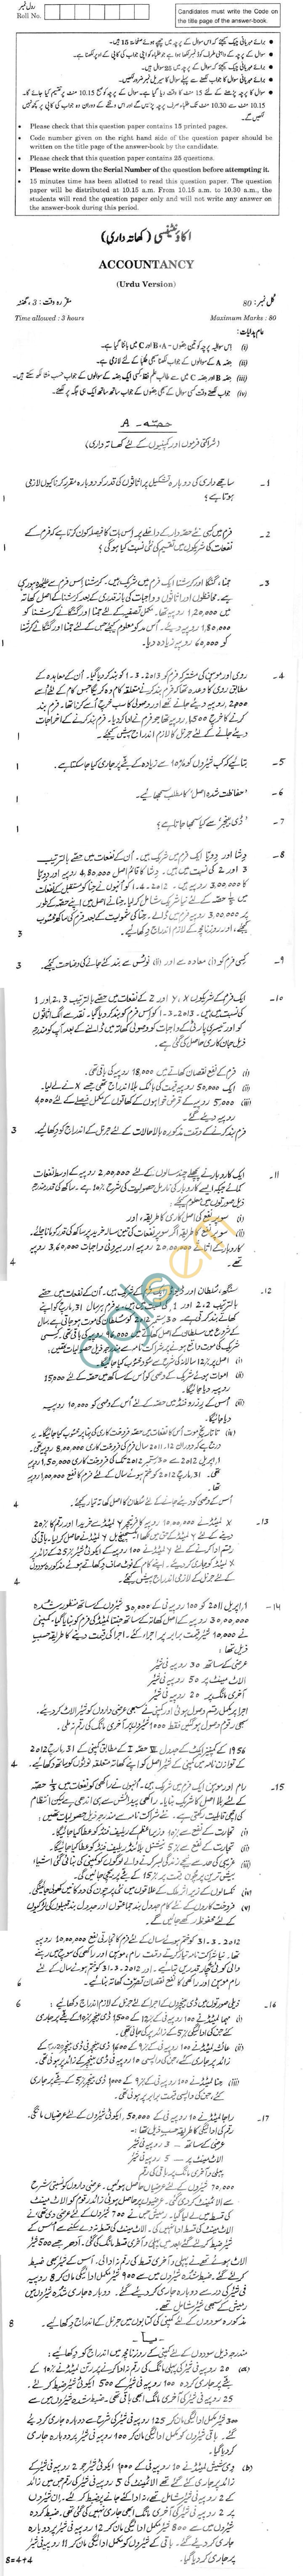 CBSE Compartment Exam 2013 Class XII Question Paper - Accountancy Urdu Version